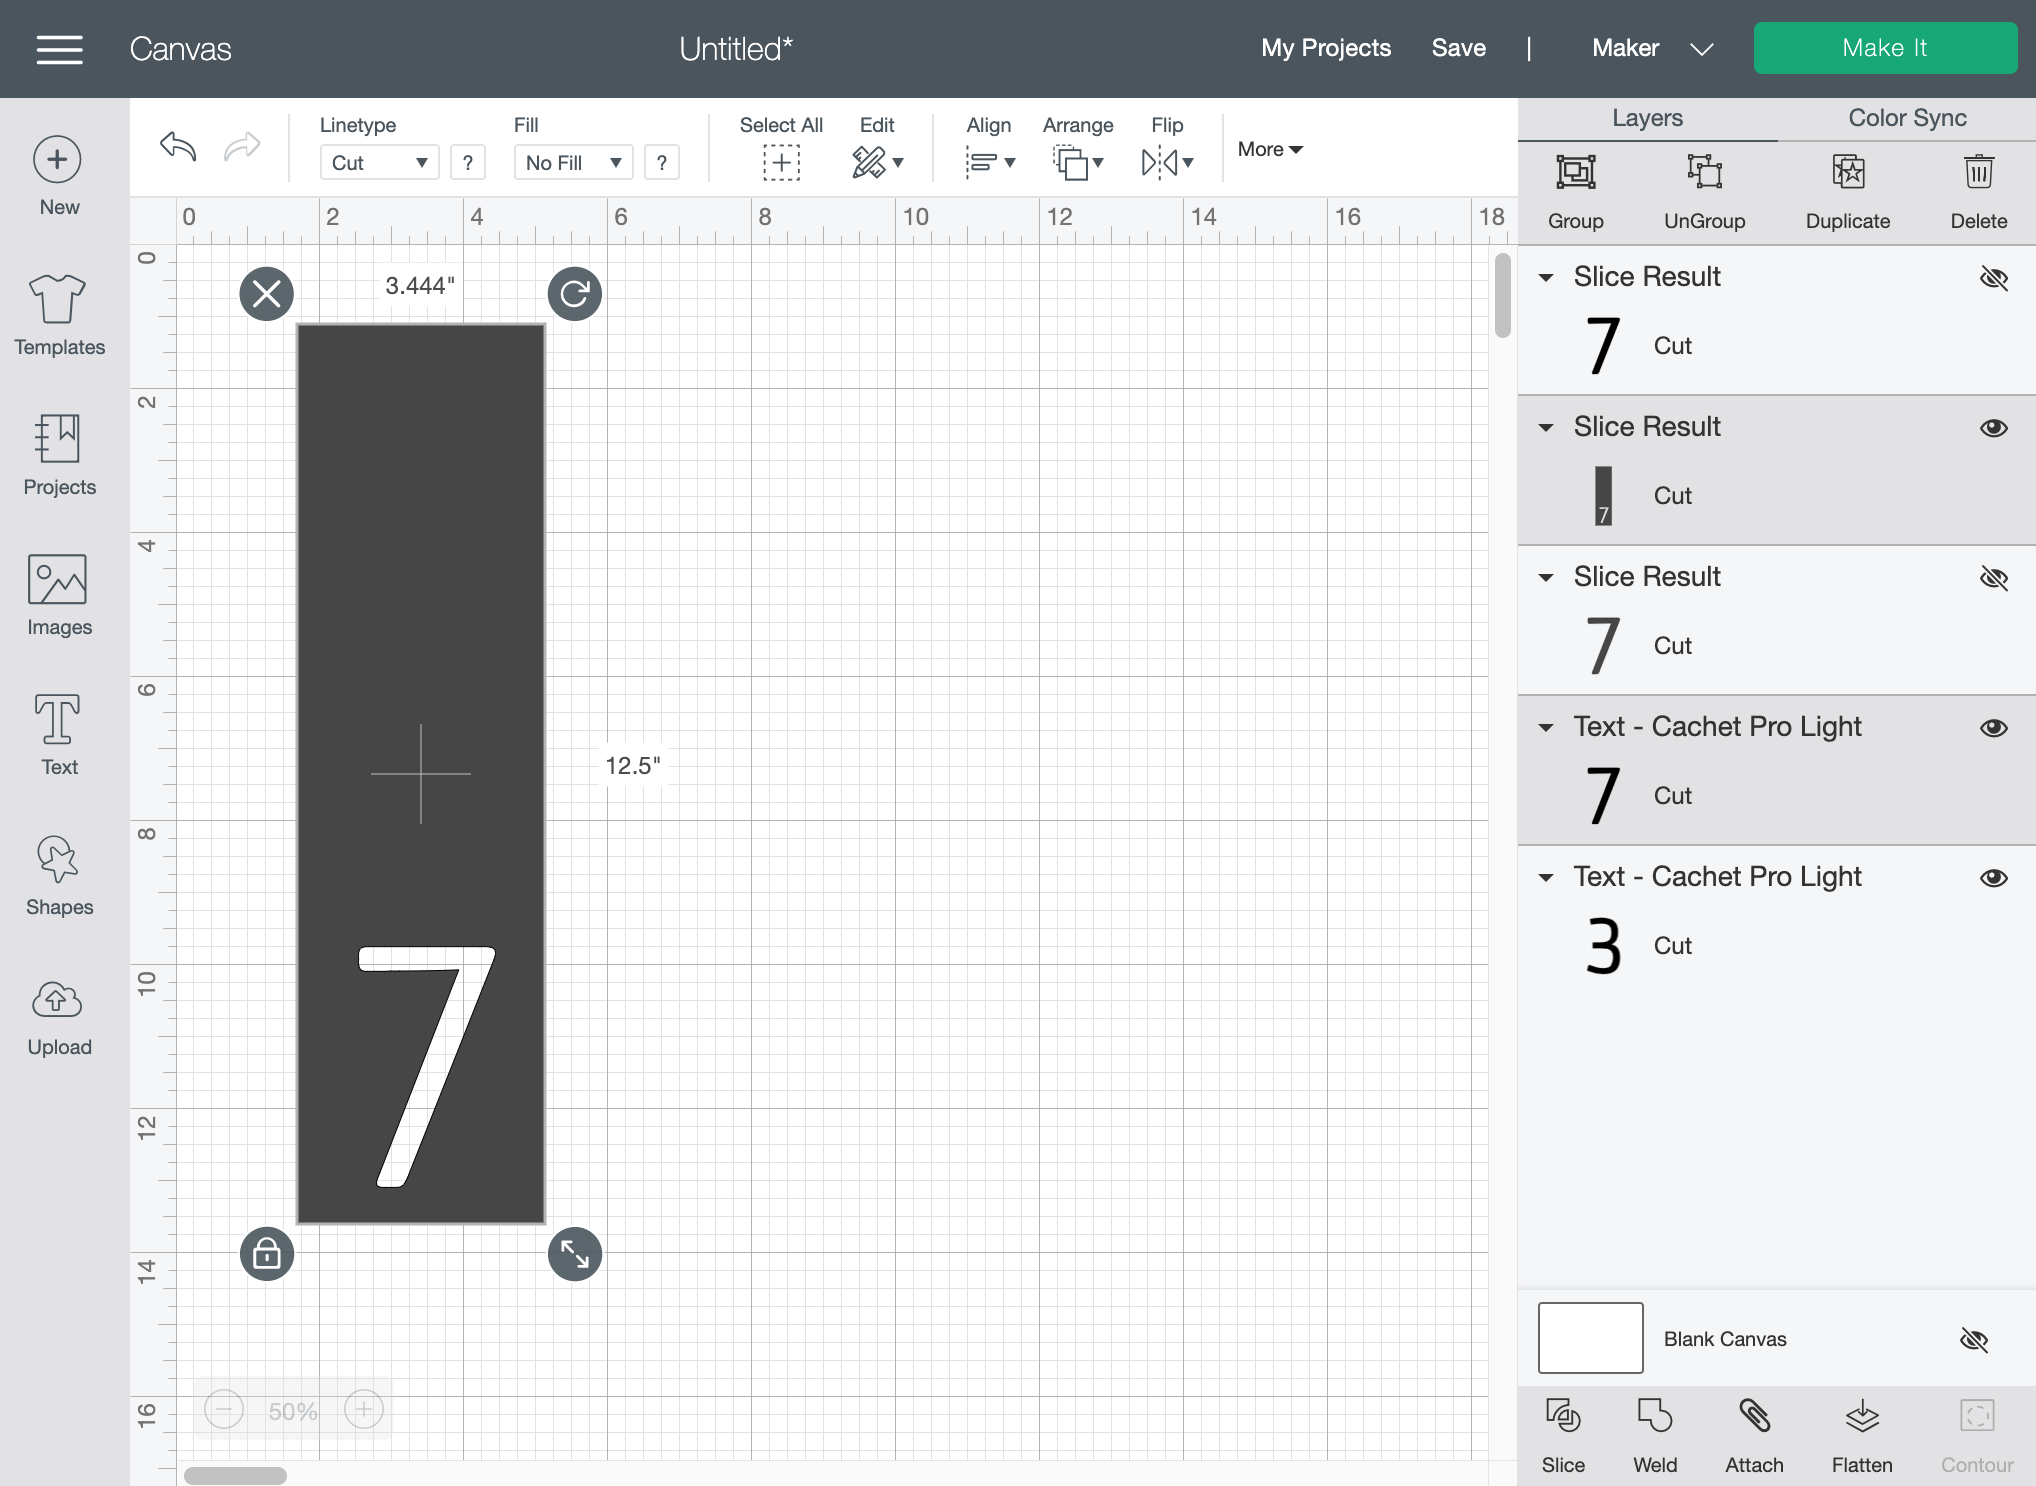 How to use the slice tool for multiple layers